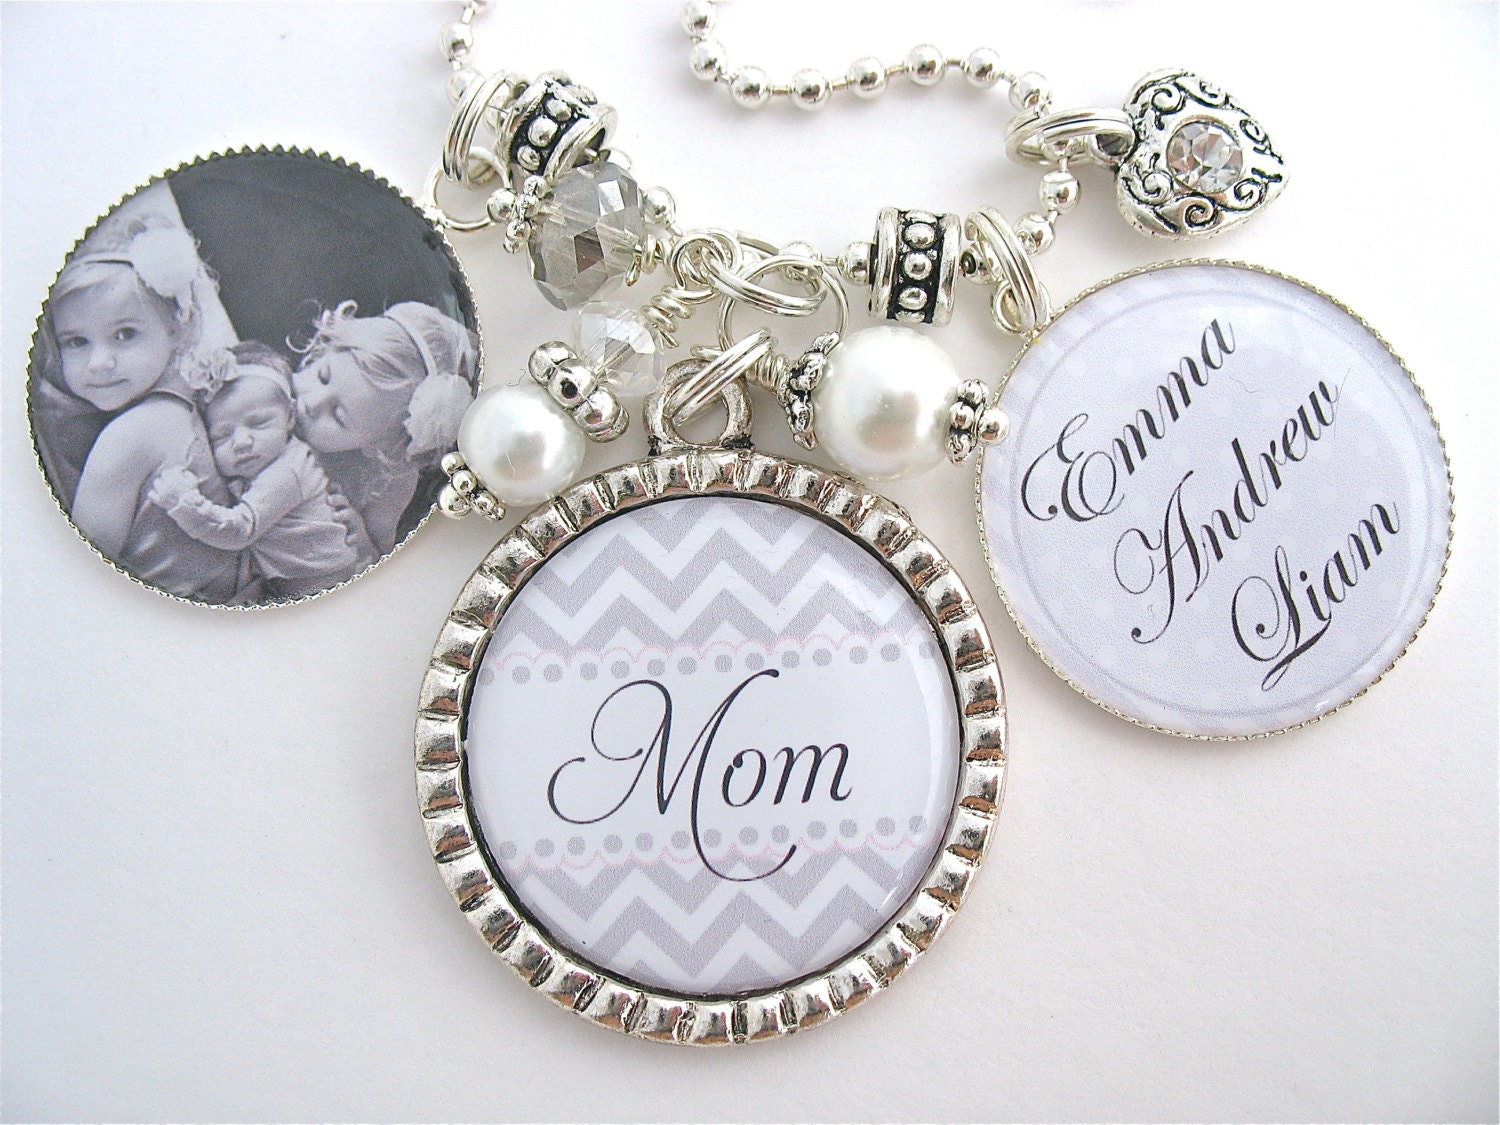 personalized mother gift mother necklace mothers day gift. Black Bedroom Furniture Sets. Home Design Ideas